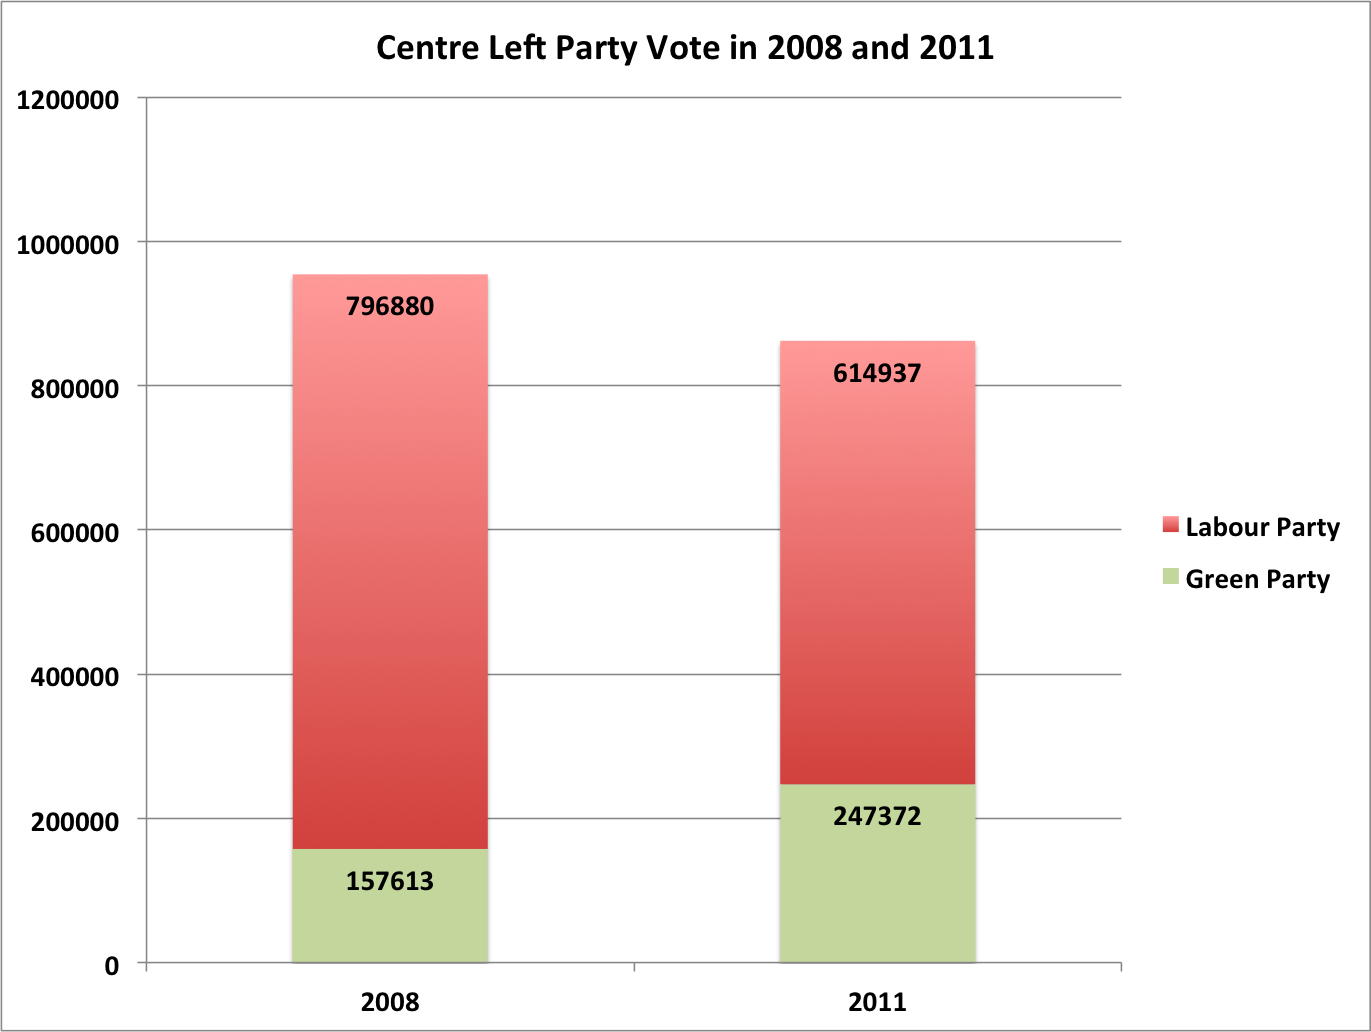 Combined Labour and Greens Party Votes for 2008 and 2011